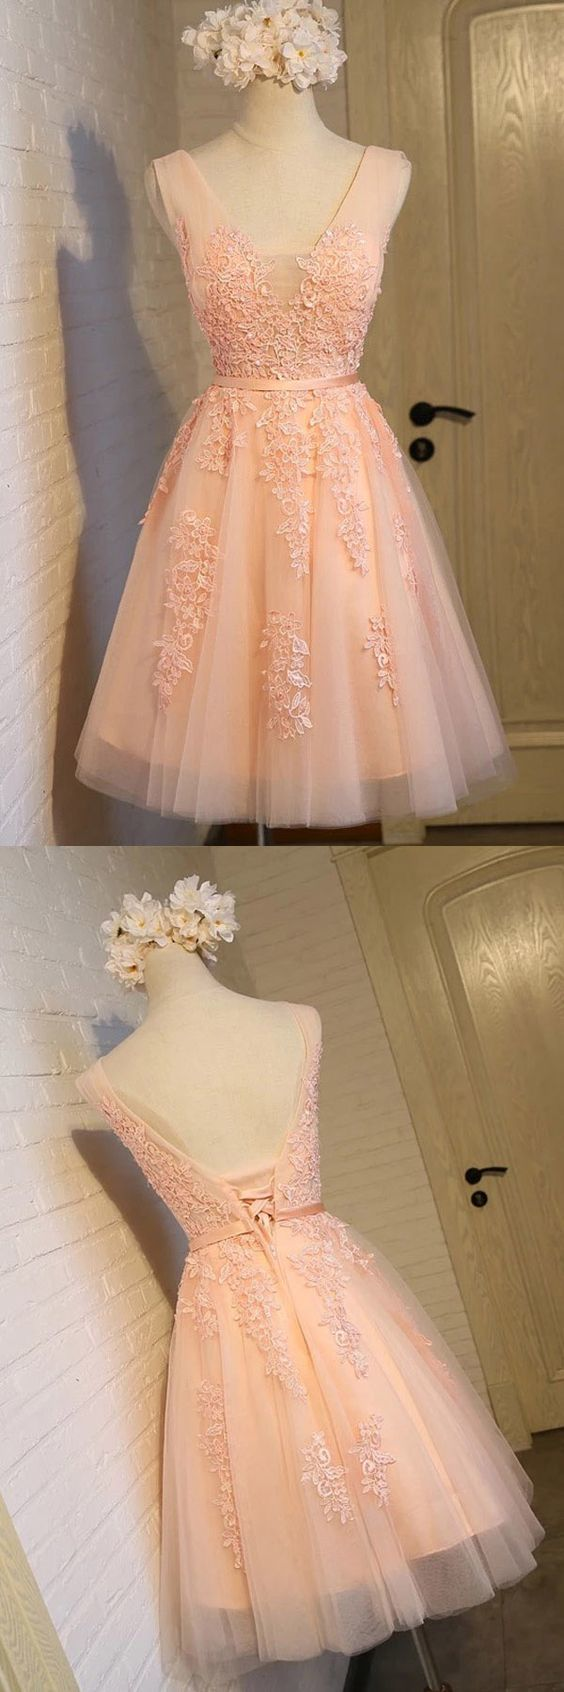 Charming tulle cute homecoming dress short prom dress in